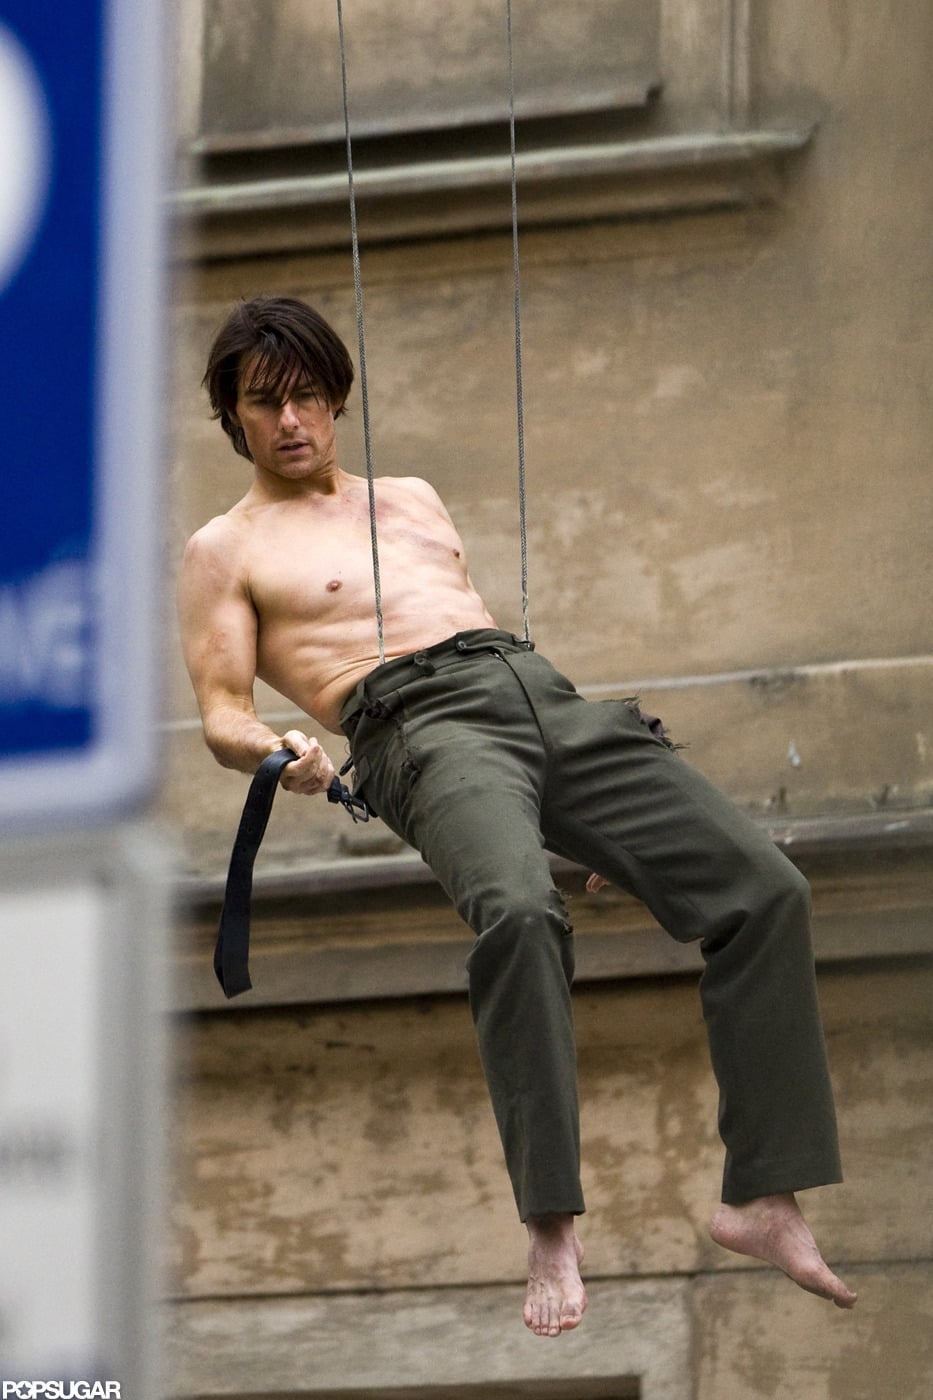 Tom Cruise was shirtless, dangling from a building for the ...